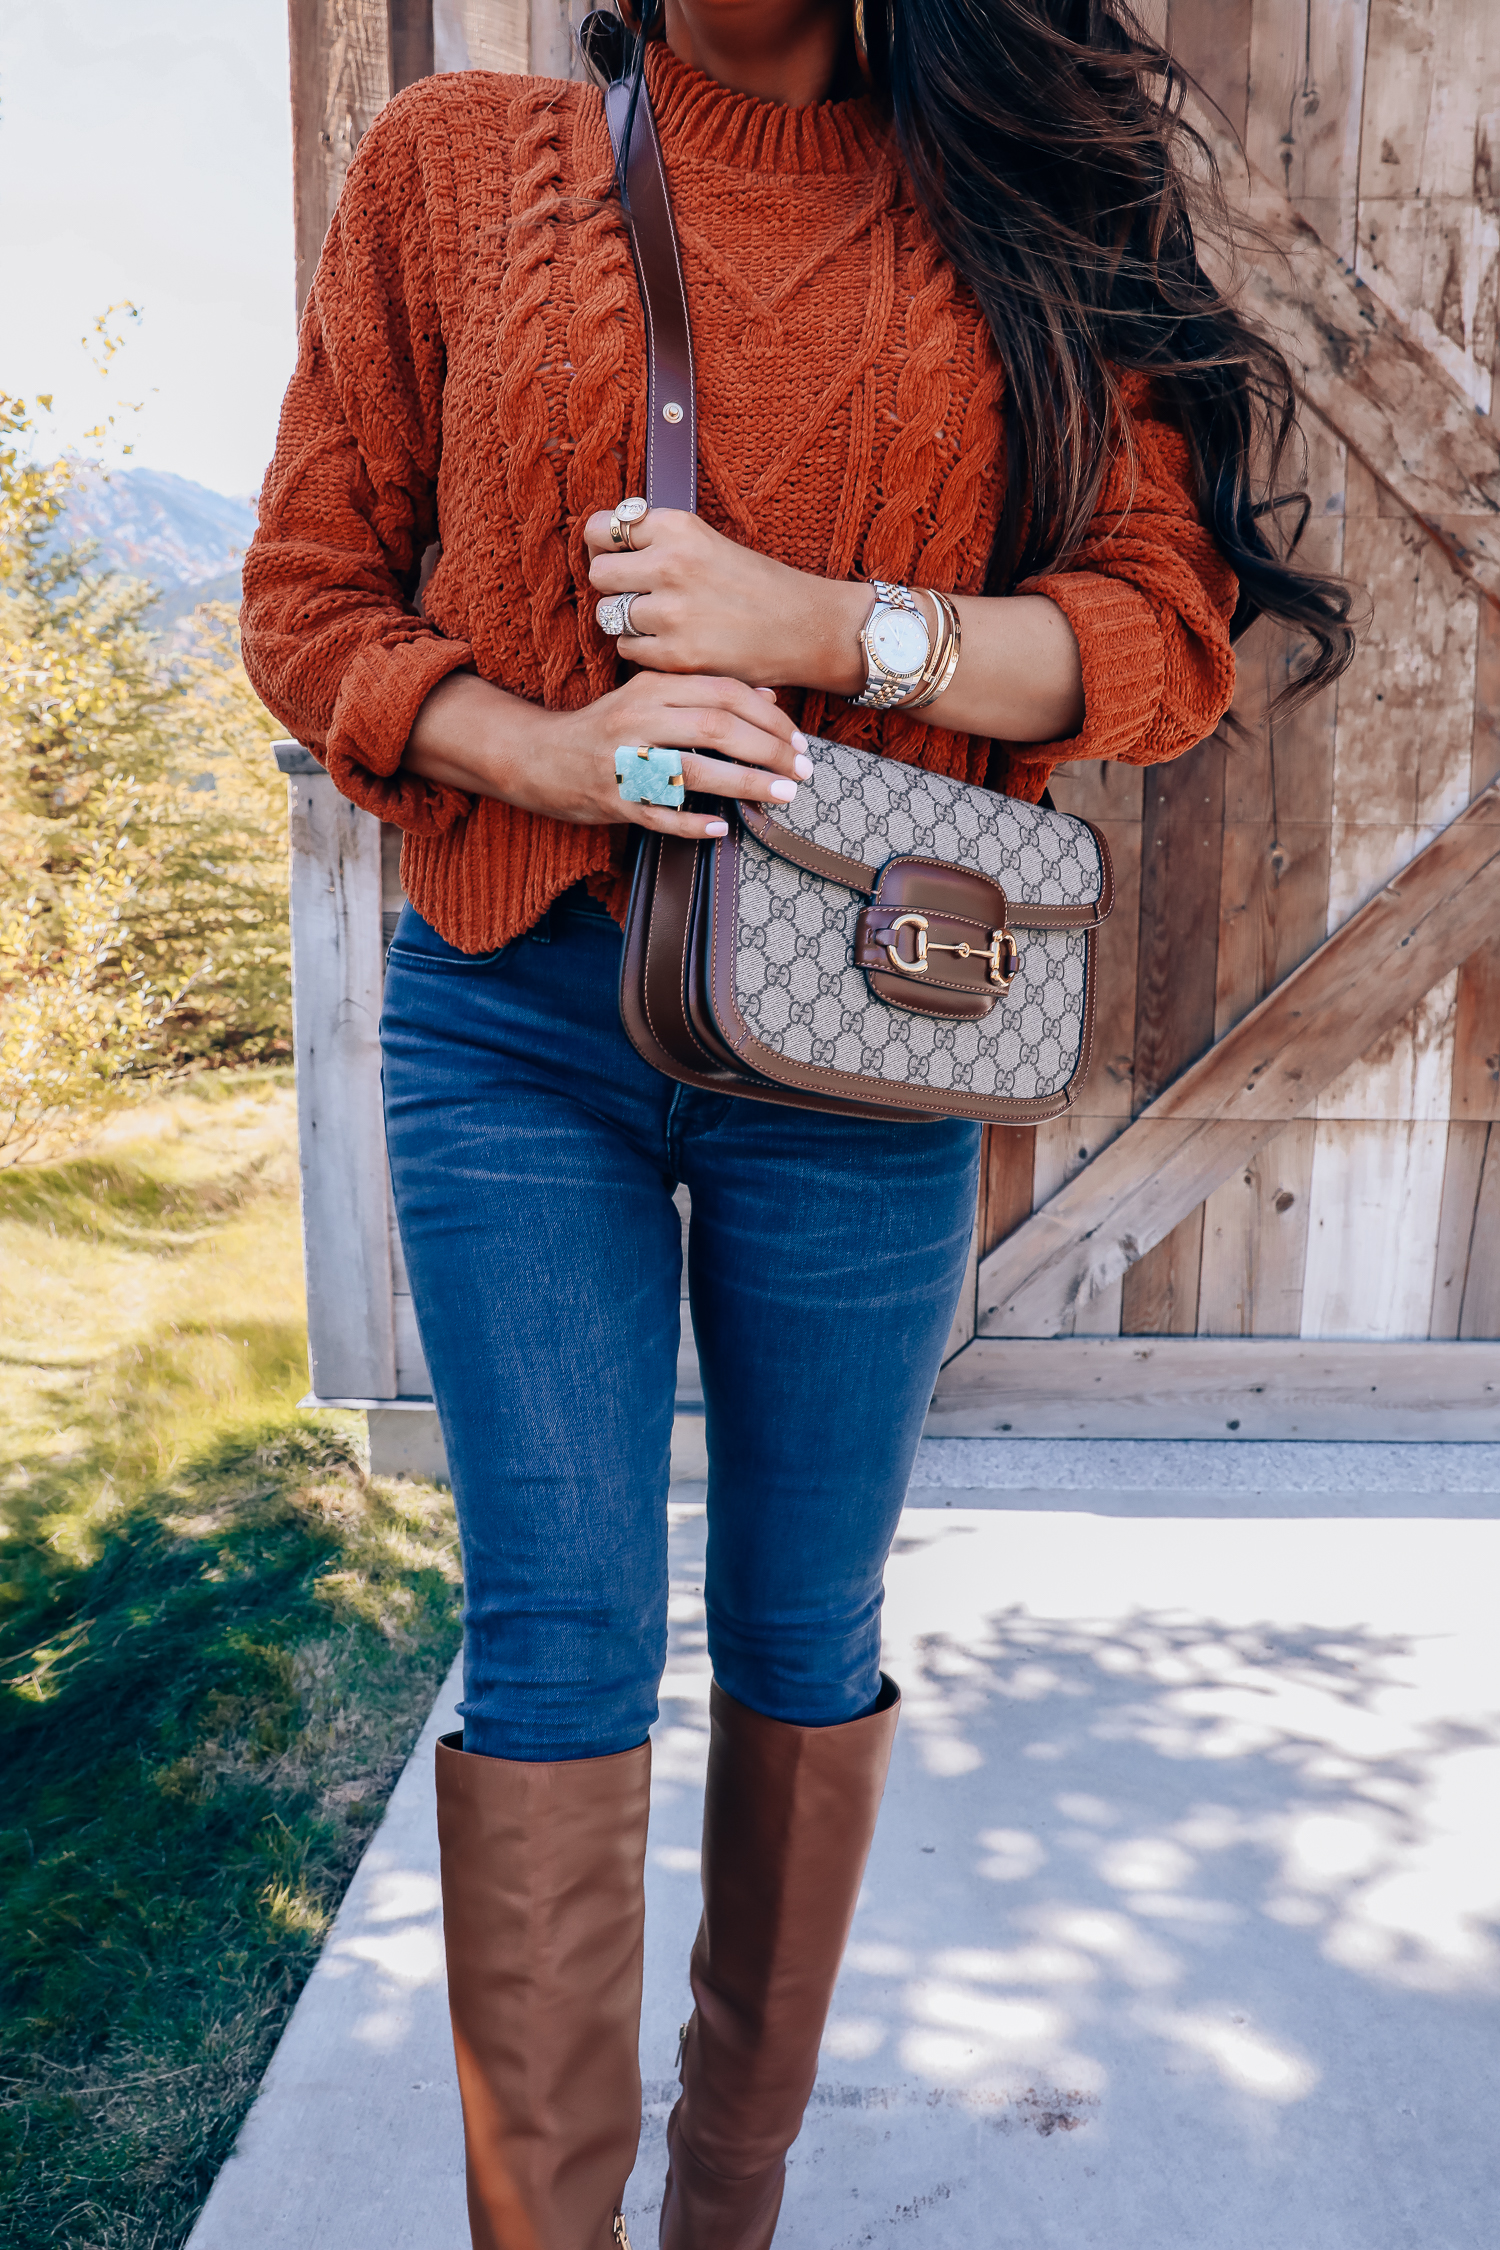 Fall fashion outfit featured by top US fashion blog, The Sweetest Thing: image of a woman wearing a BlankNYC rust sweater, Express denim leggings, Sam Edelman boots, Gucci 1955 shoulder bag, Cartie bracelets, Argento Vivo earrings, Gucci sunglasses and a Free People ring.| fall fashion outfits pinterest 2019, gucci vintage 1955 fall, emily ann gemma, sam edelman brown leather boots_-2